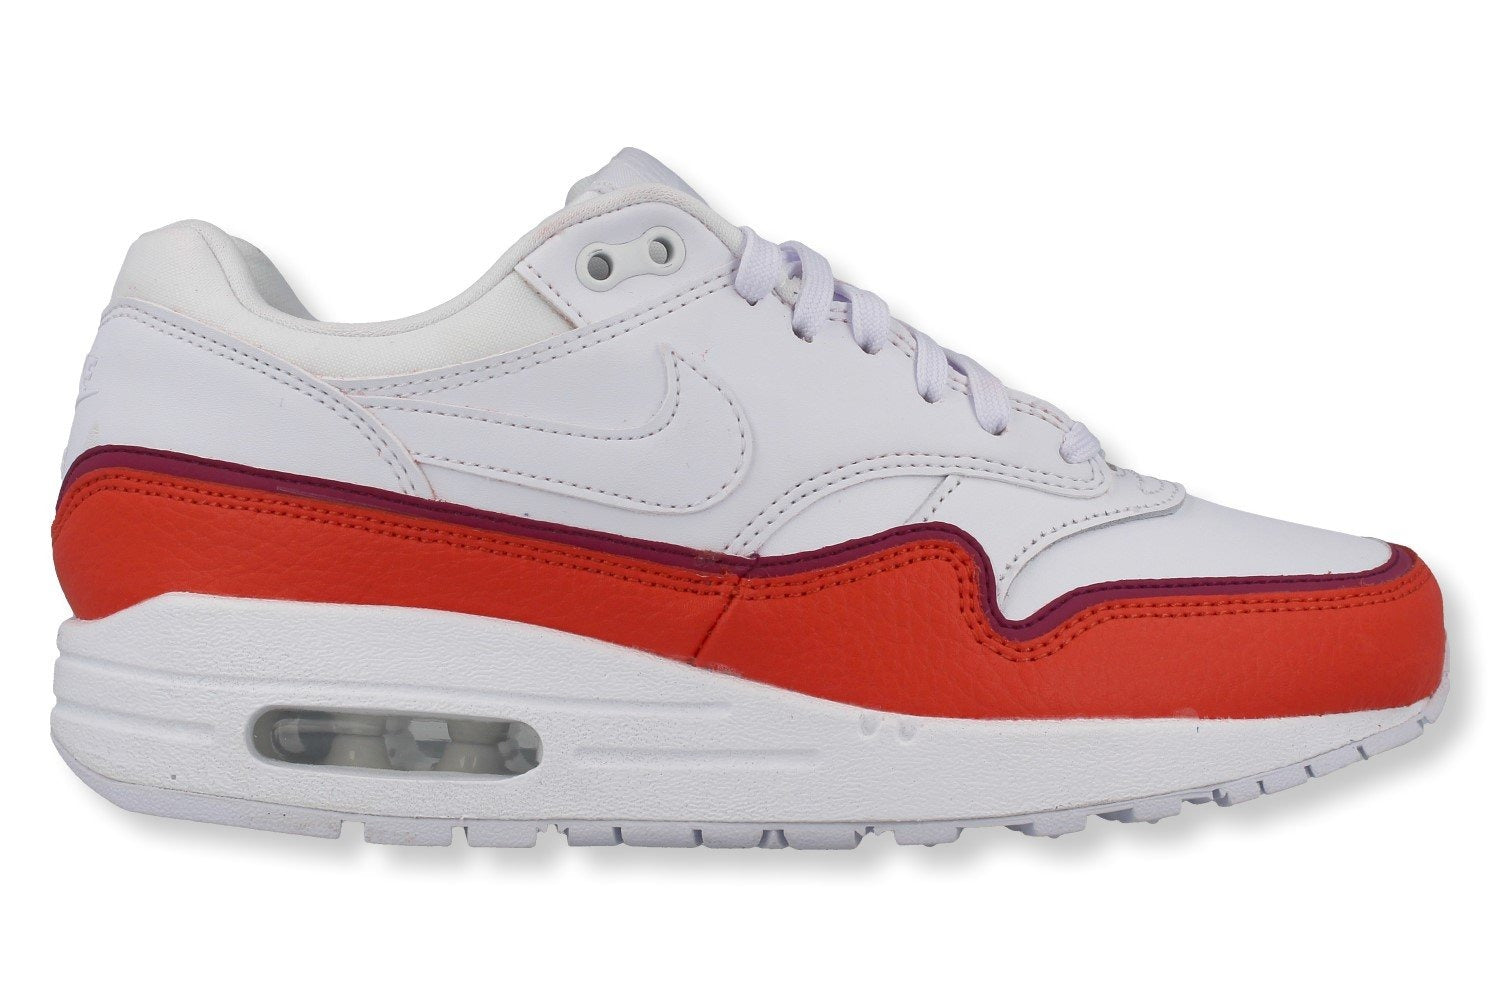 WMNS Air Max 1 SE Overbranded